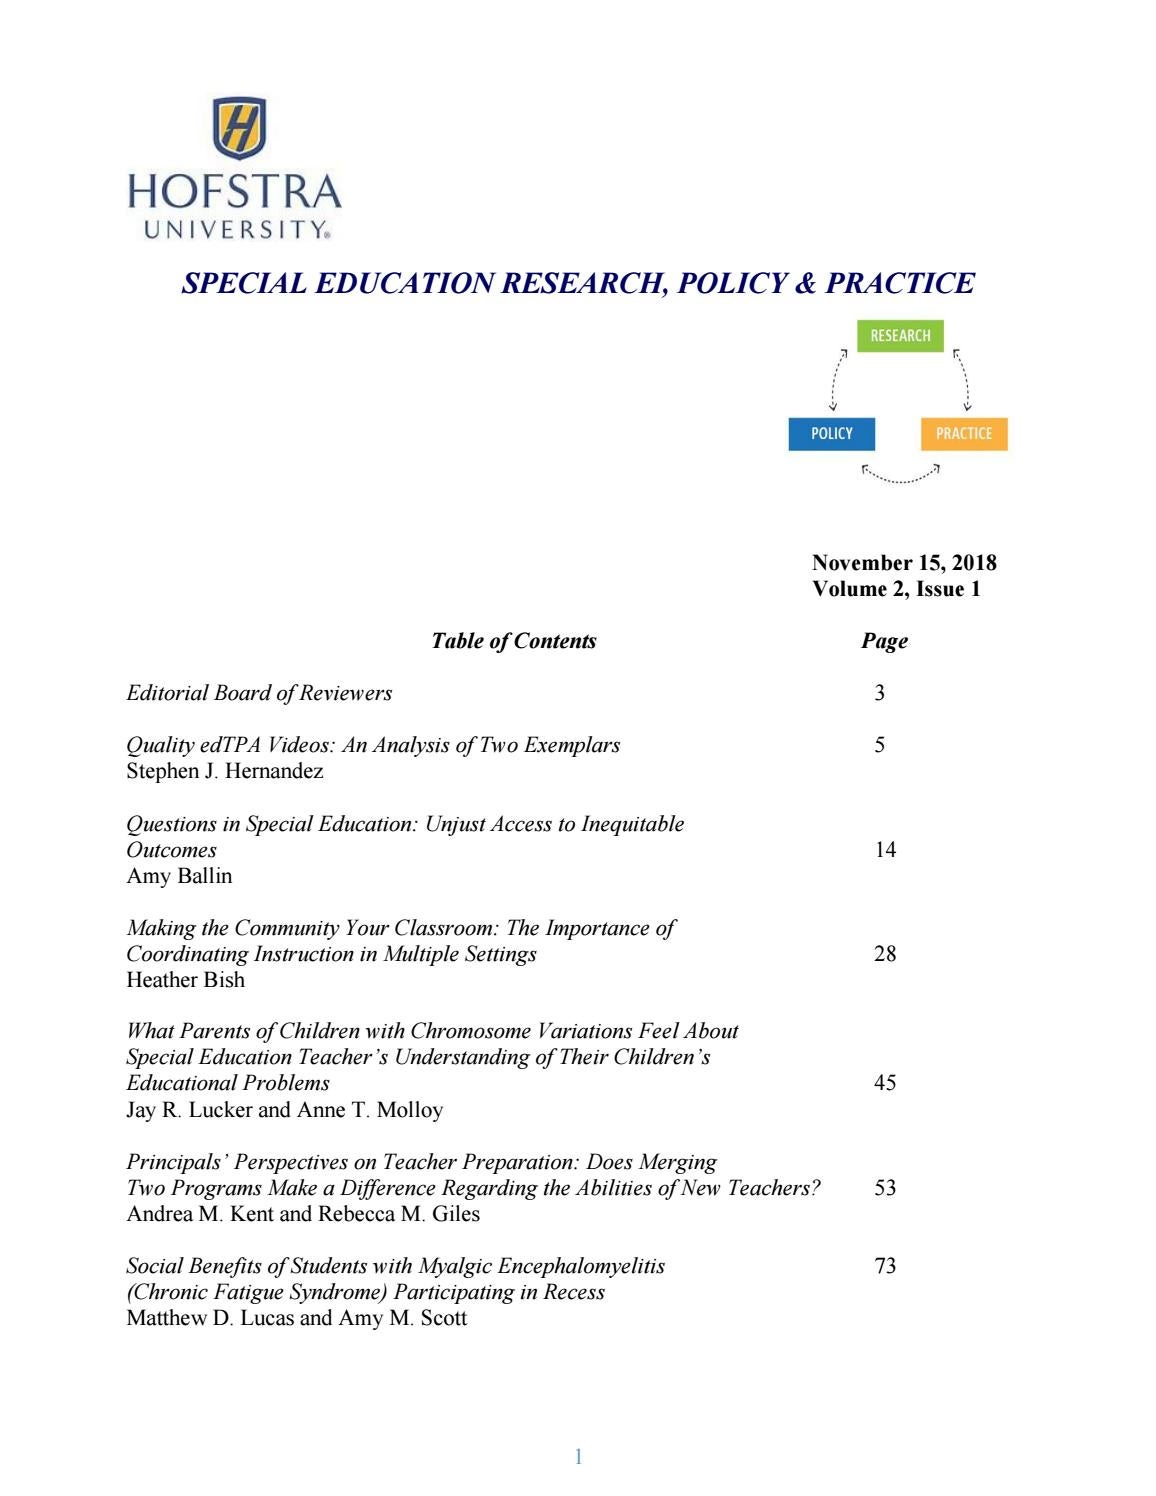 Special Education Research Policy Practice 2018 By Hofstra University Issuu